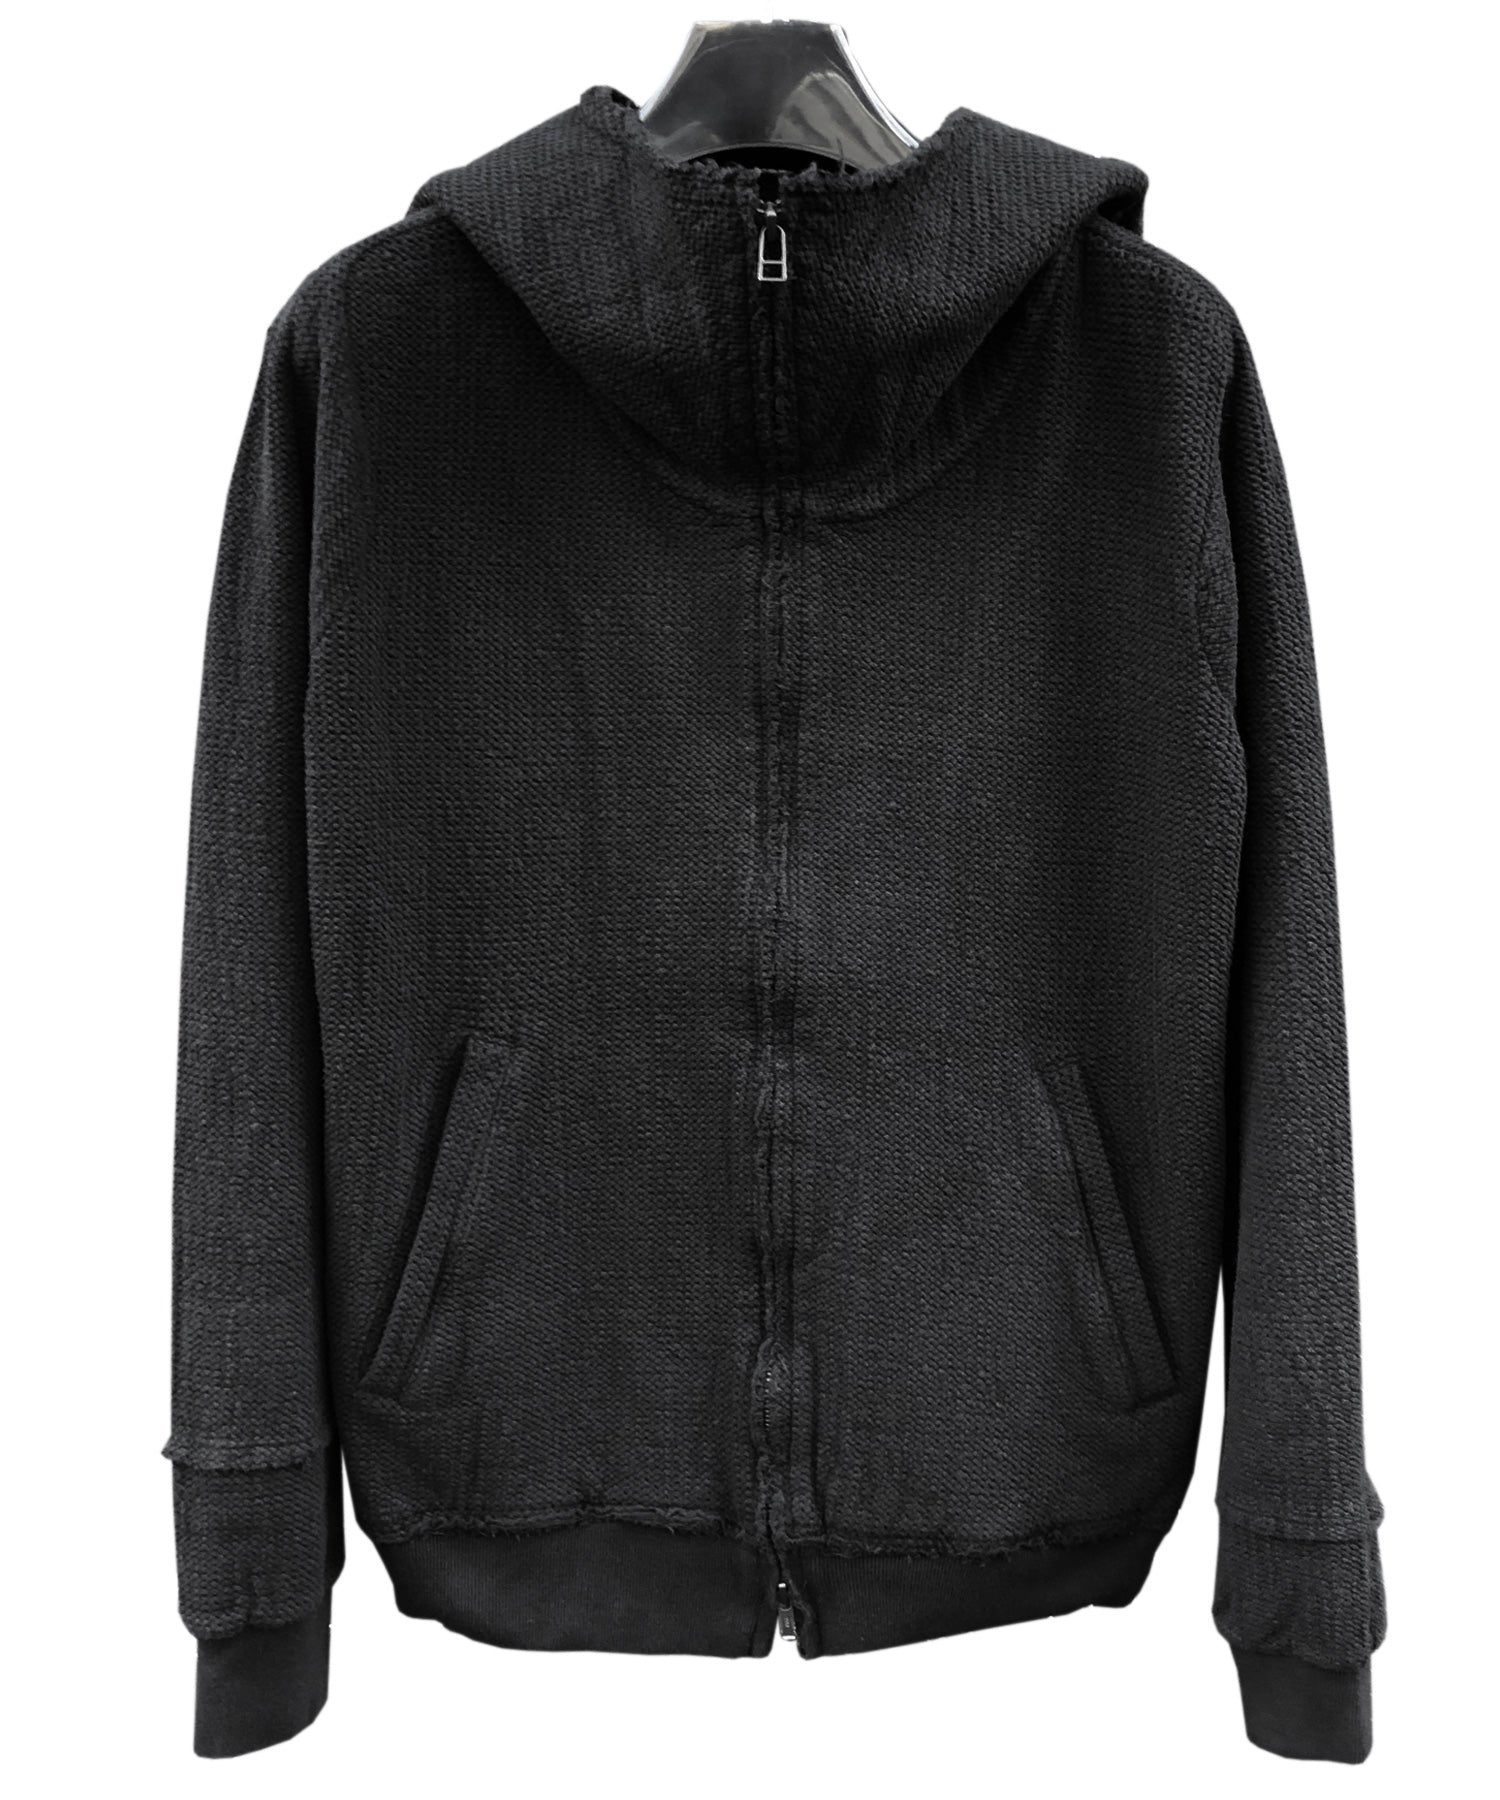 Load image into Gallery viewer, Stretch Jersey Garment Dyed Zip Up Hoody / Black